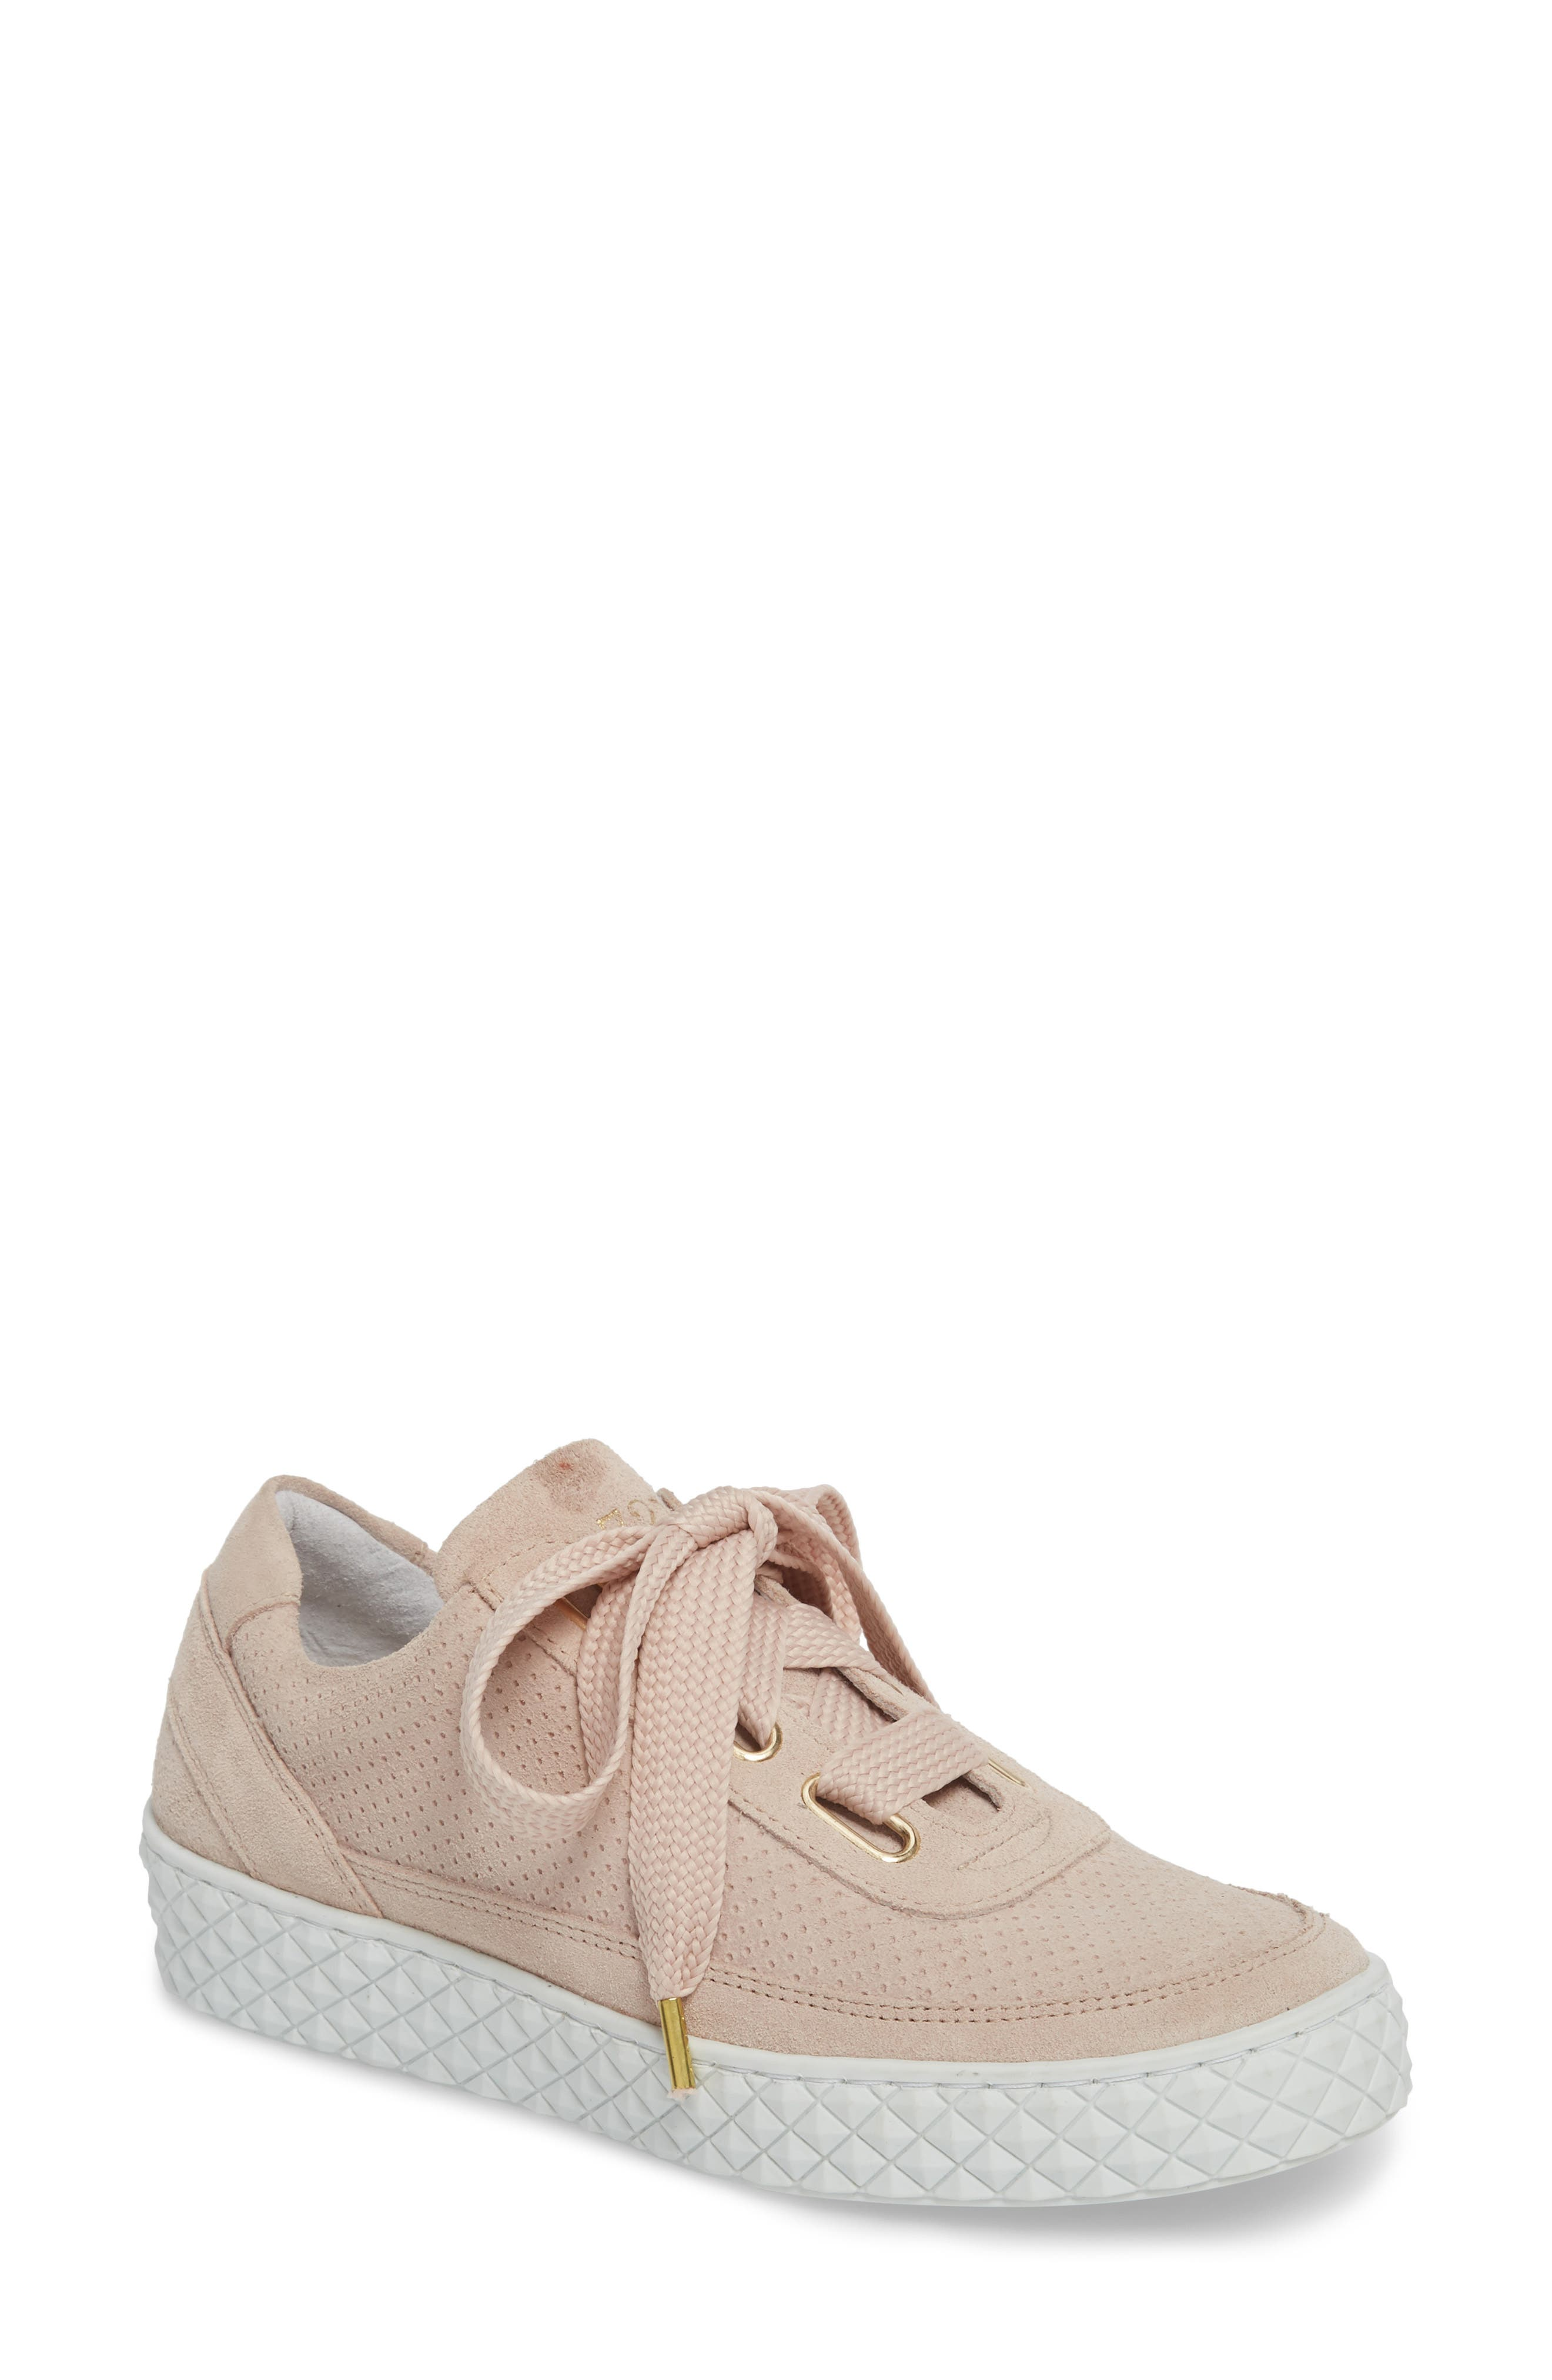 Montreal II Sneaker,                             Main thumbnail 1, color,                             NUDE SUEDE